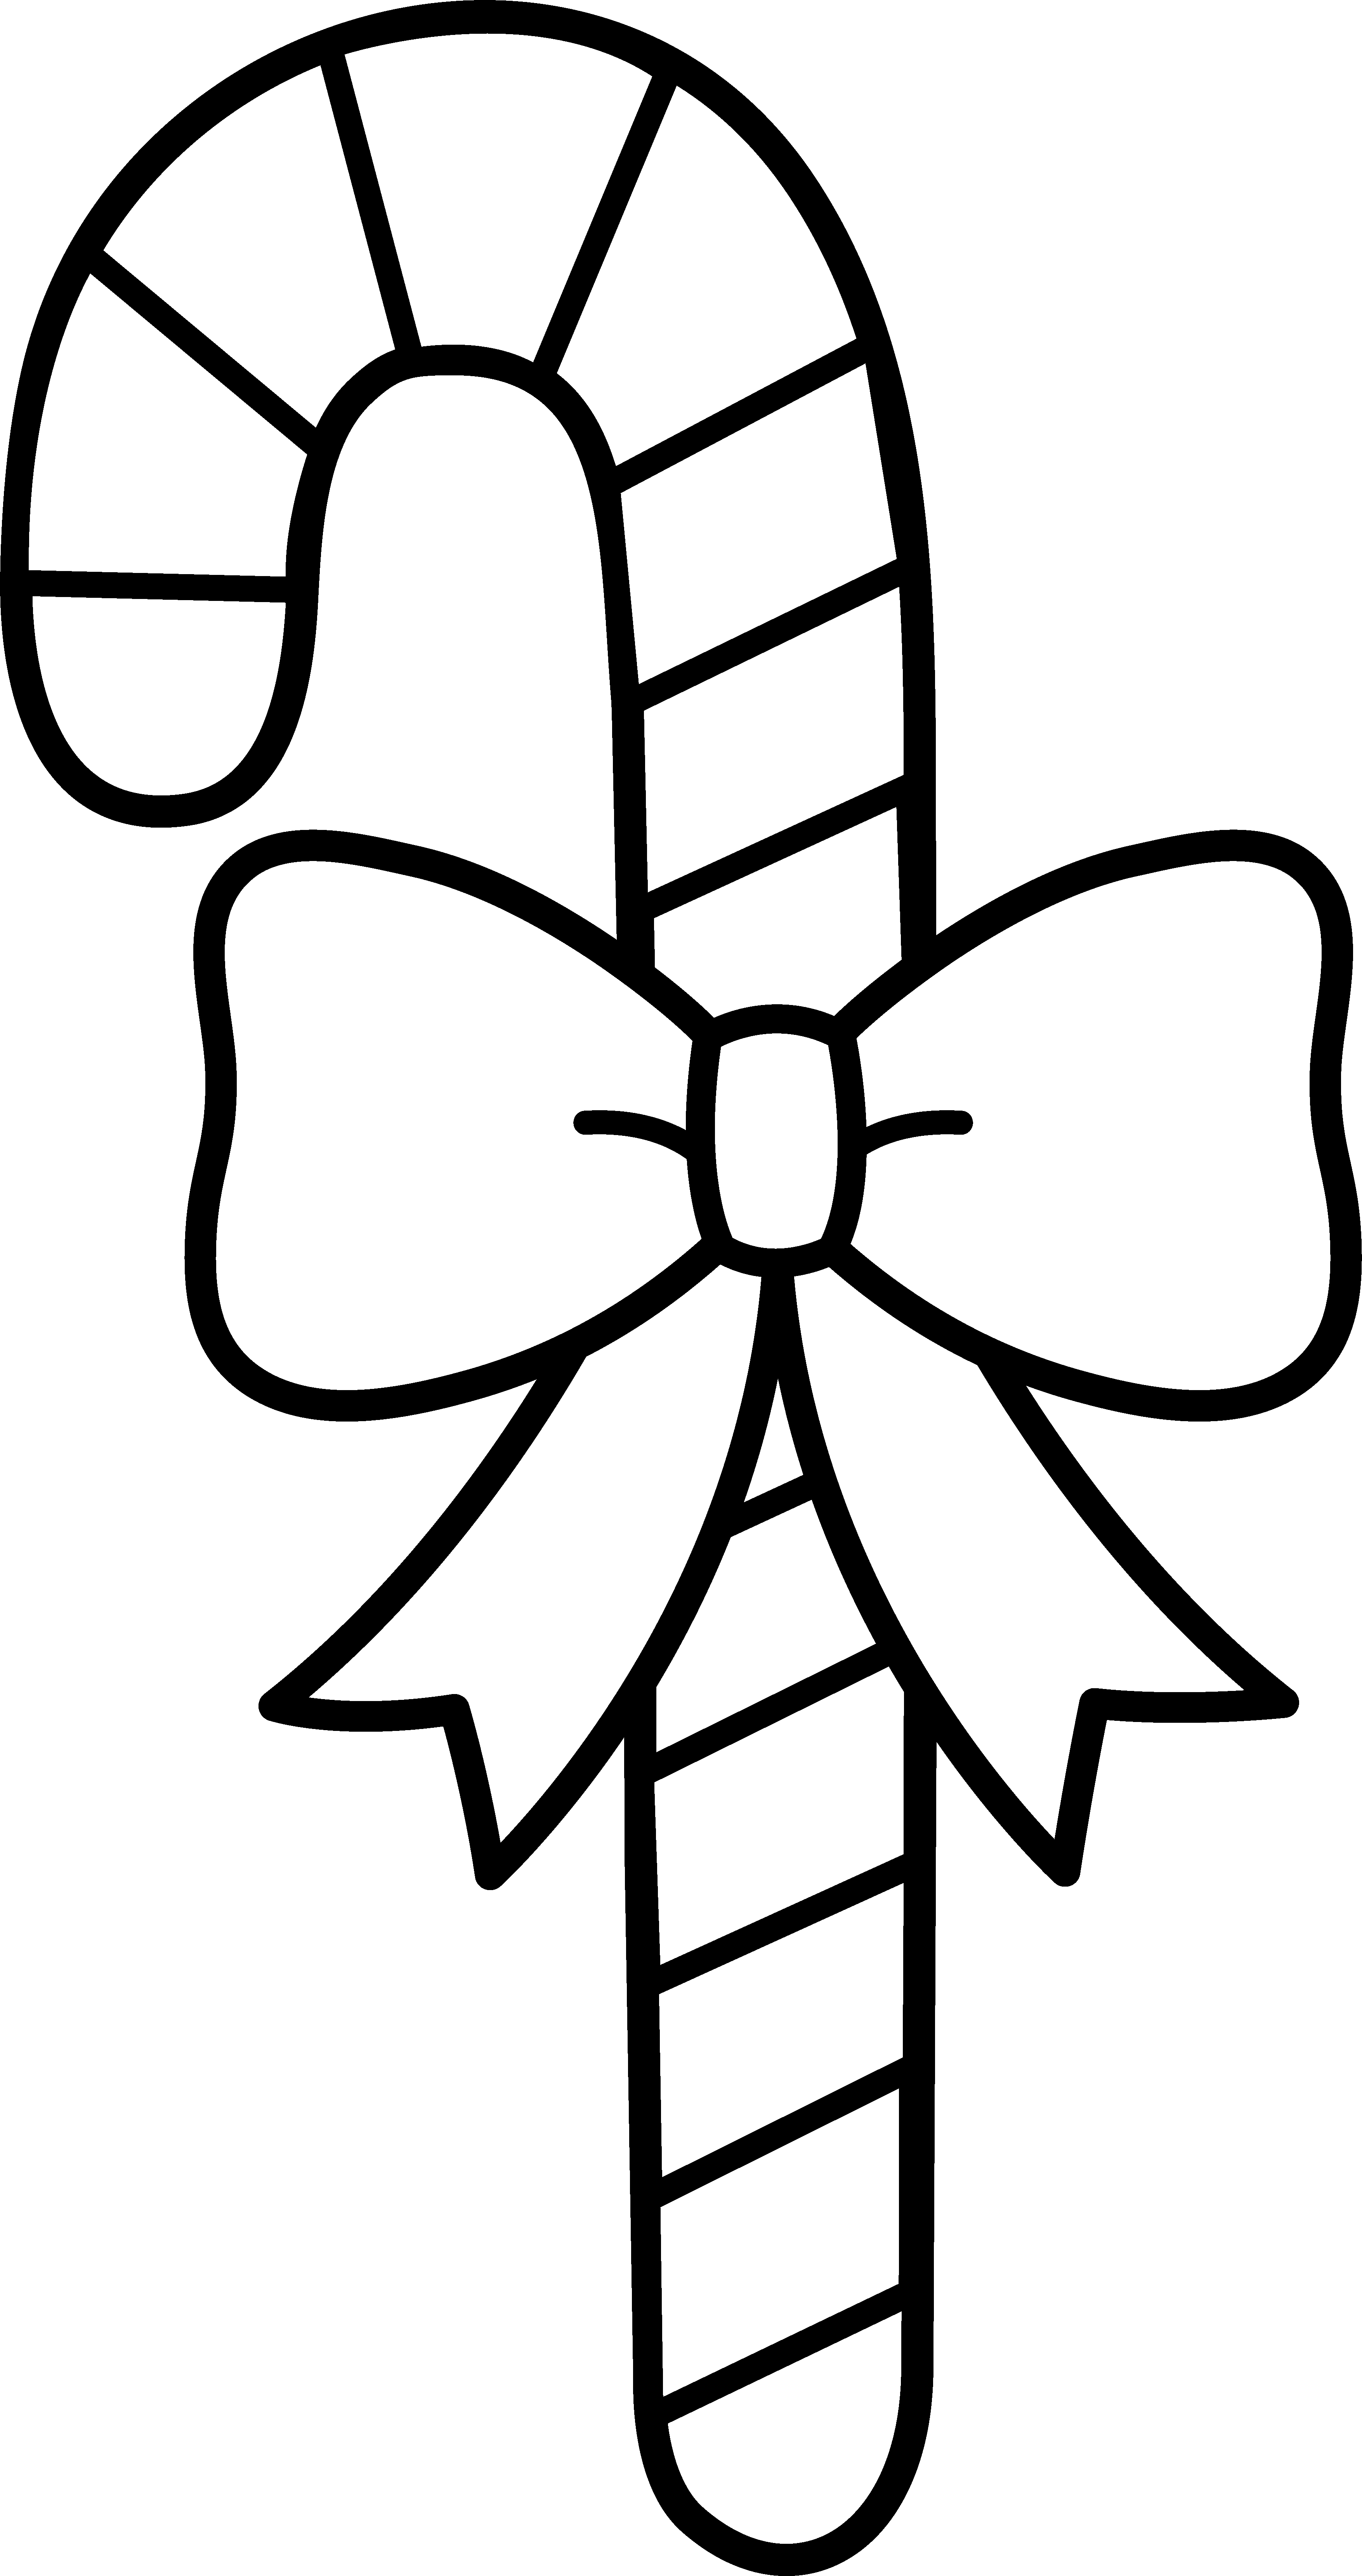 Christmas bow clipart black and white clipart library download 28+ Collection of Christmas Candy Clipart Black And White | High ... clipart library download